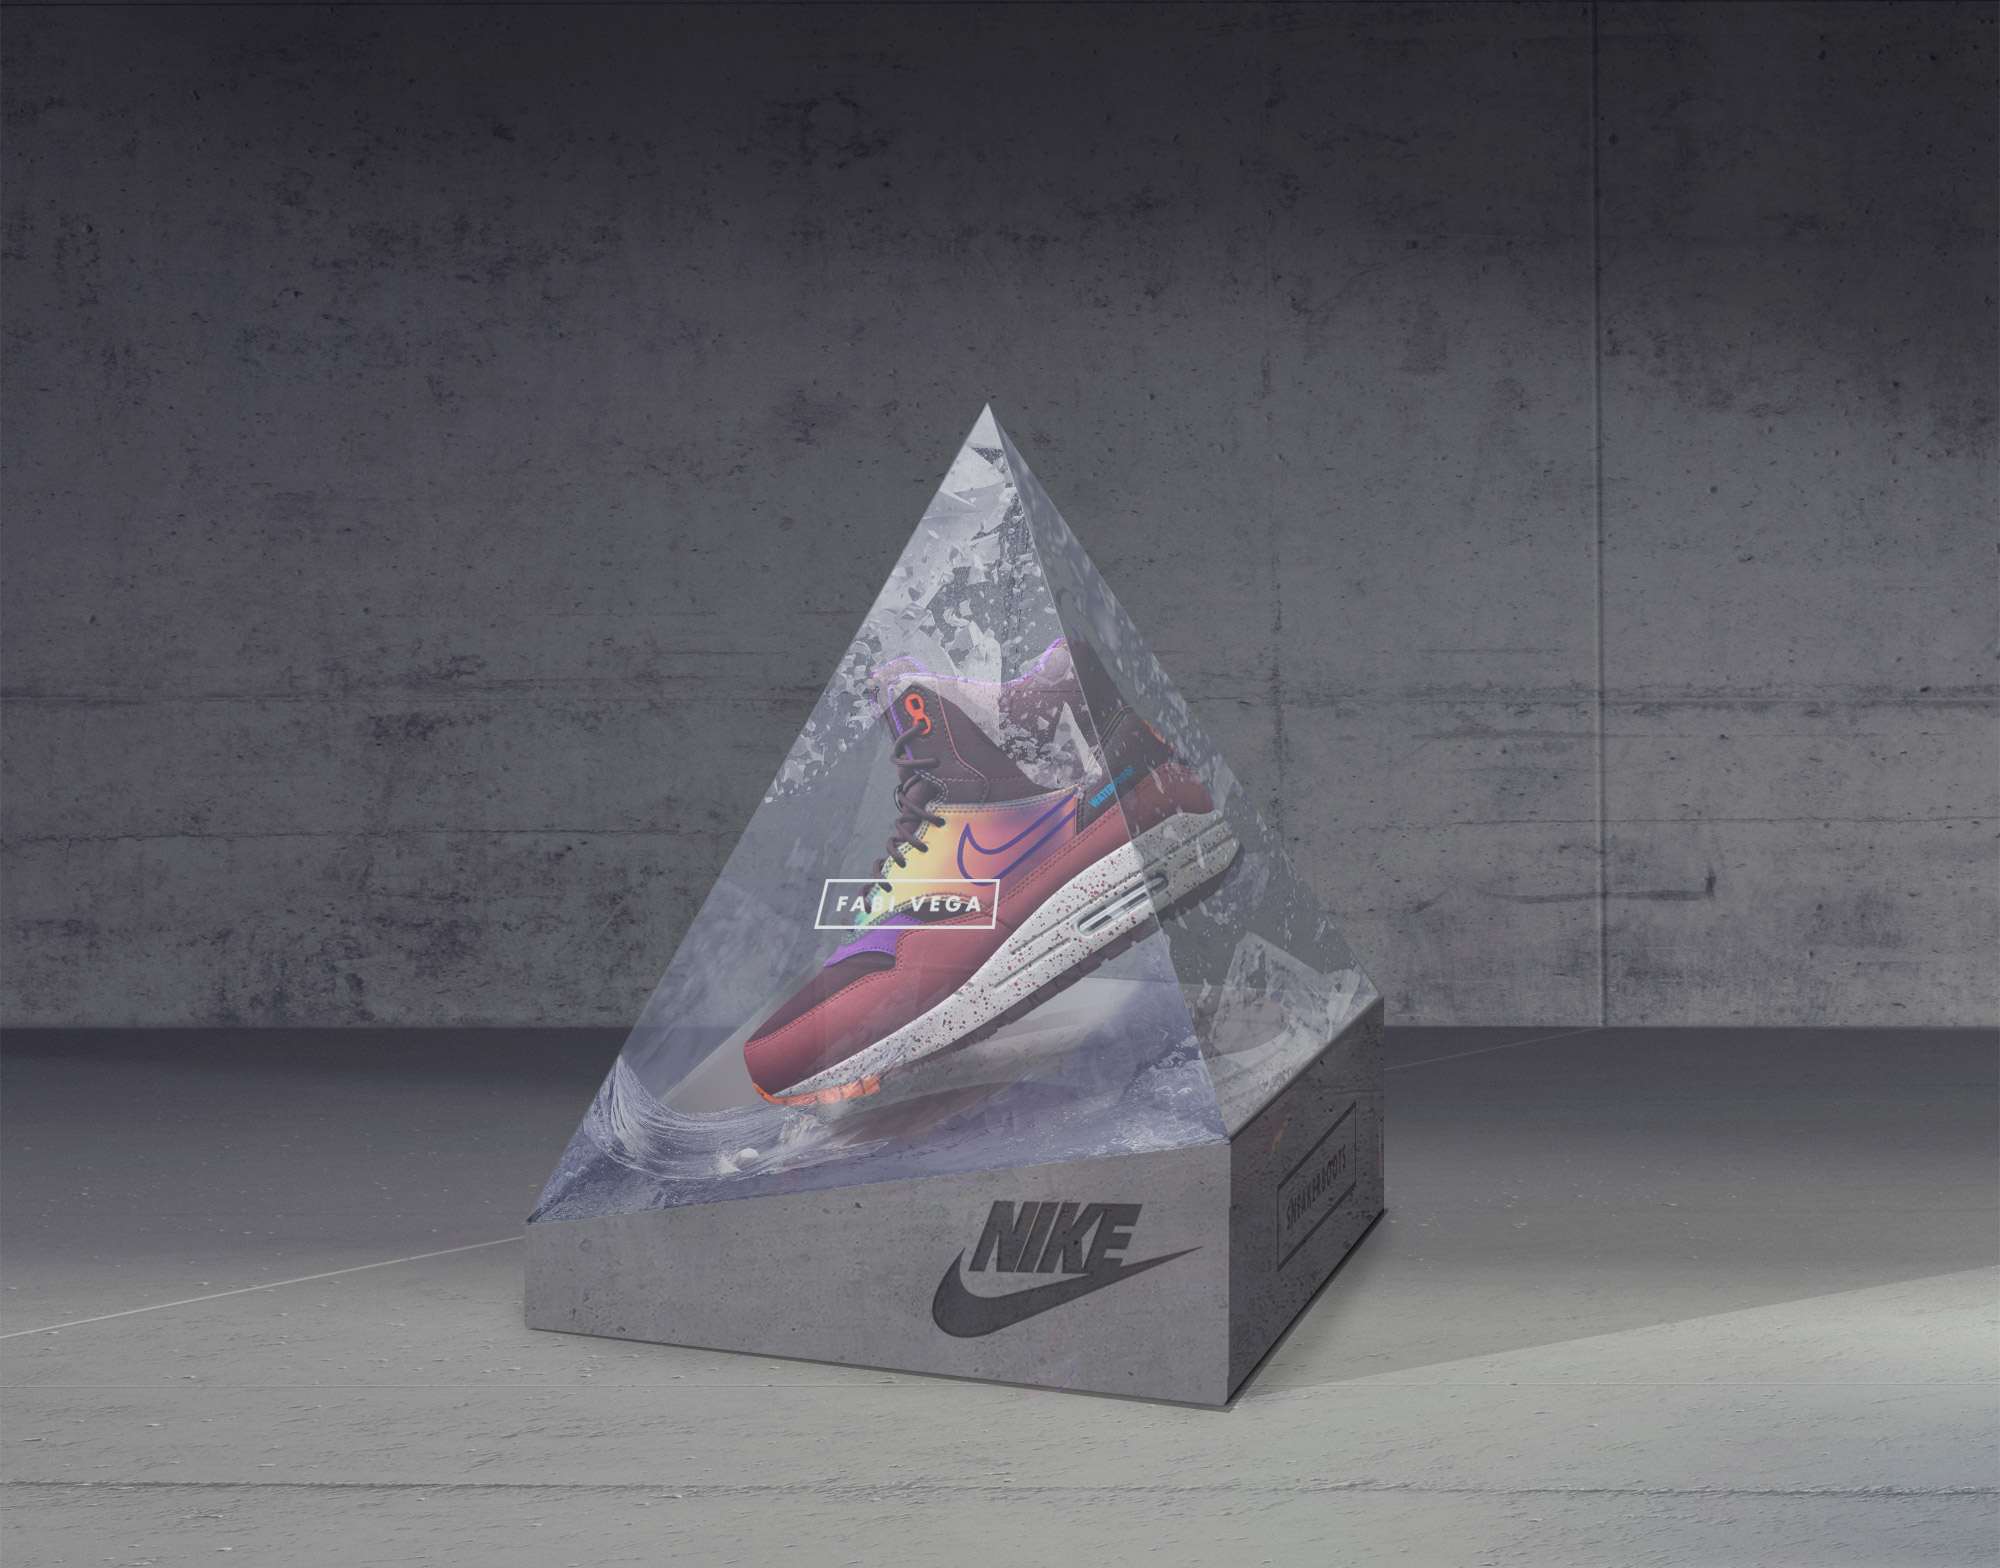 NIKE CUSTOM PACKAGING